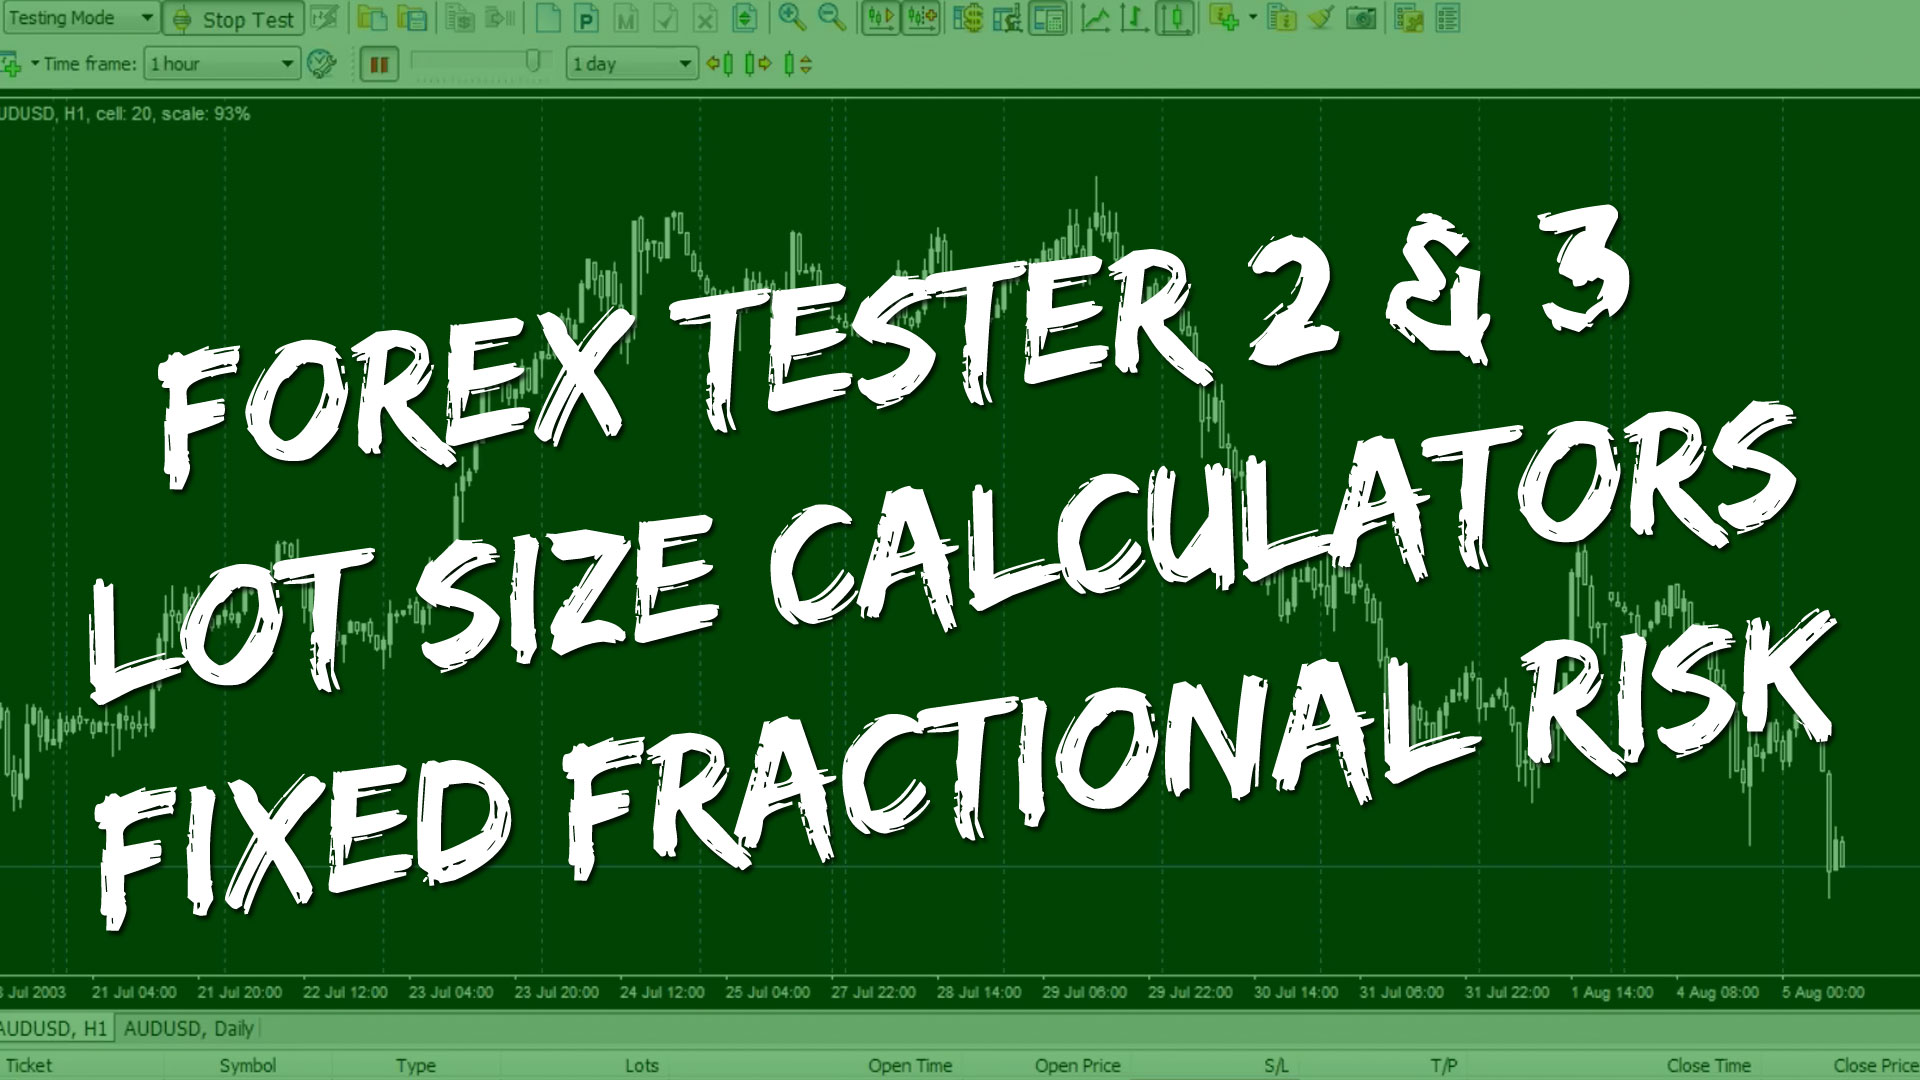 Forex Tester lot size calculator